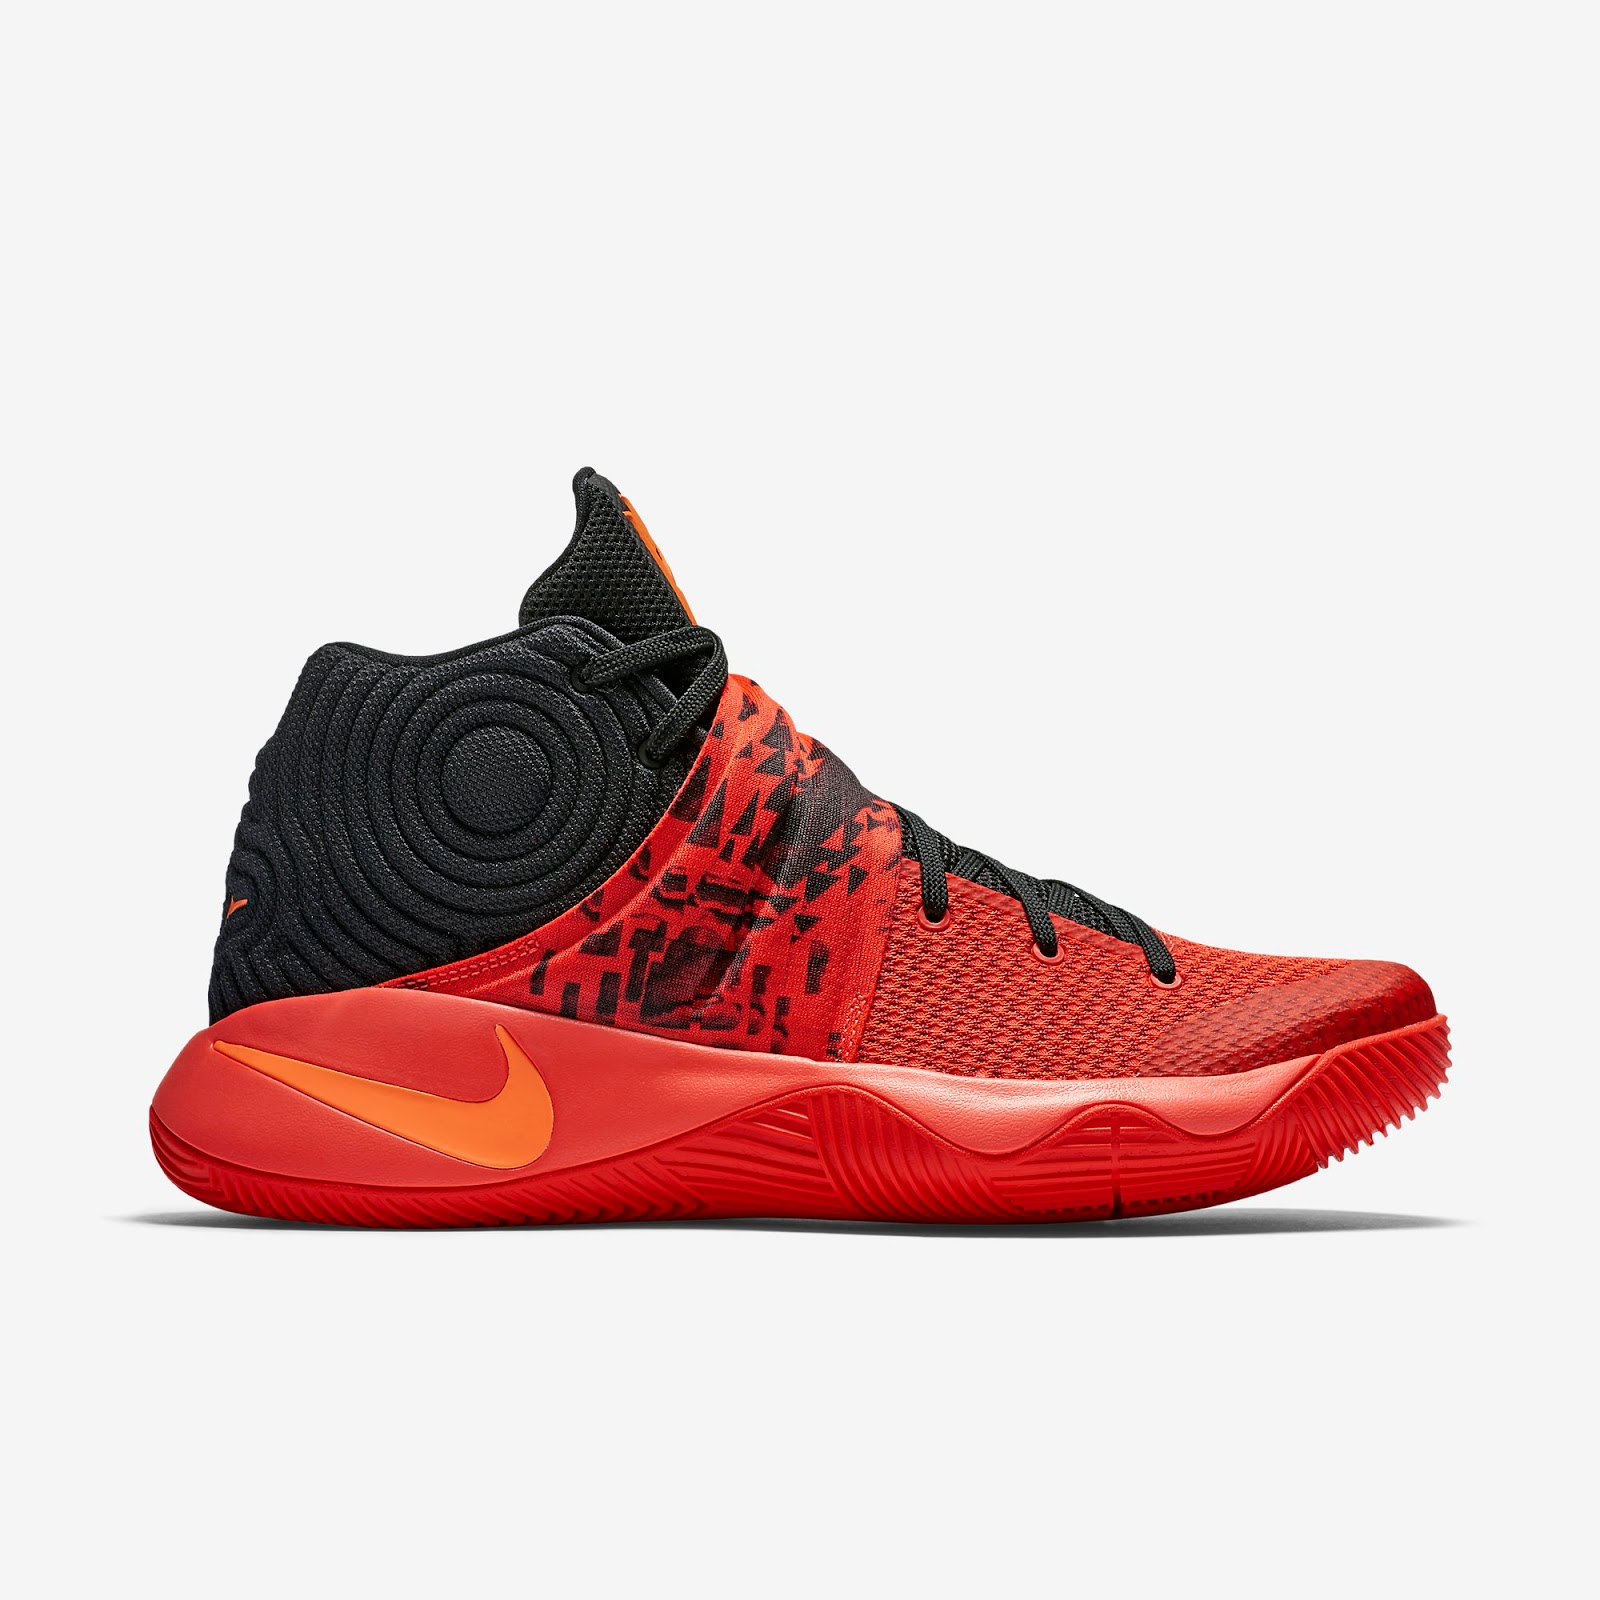 7dbca51028a ajordanxi Your  1 Source For Sneaker Release Dates  Nike Kyrie 2 ...